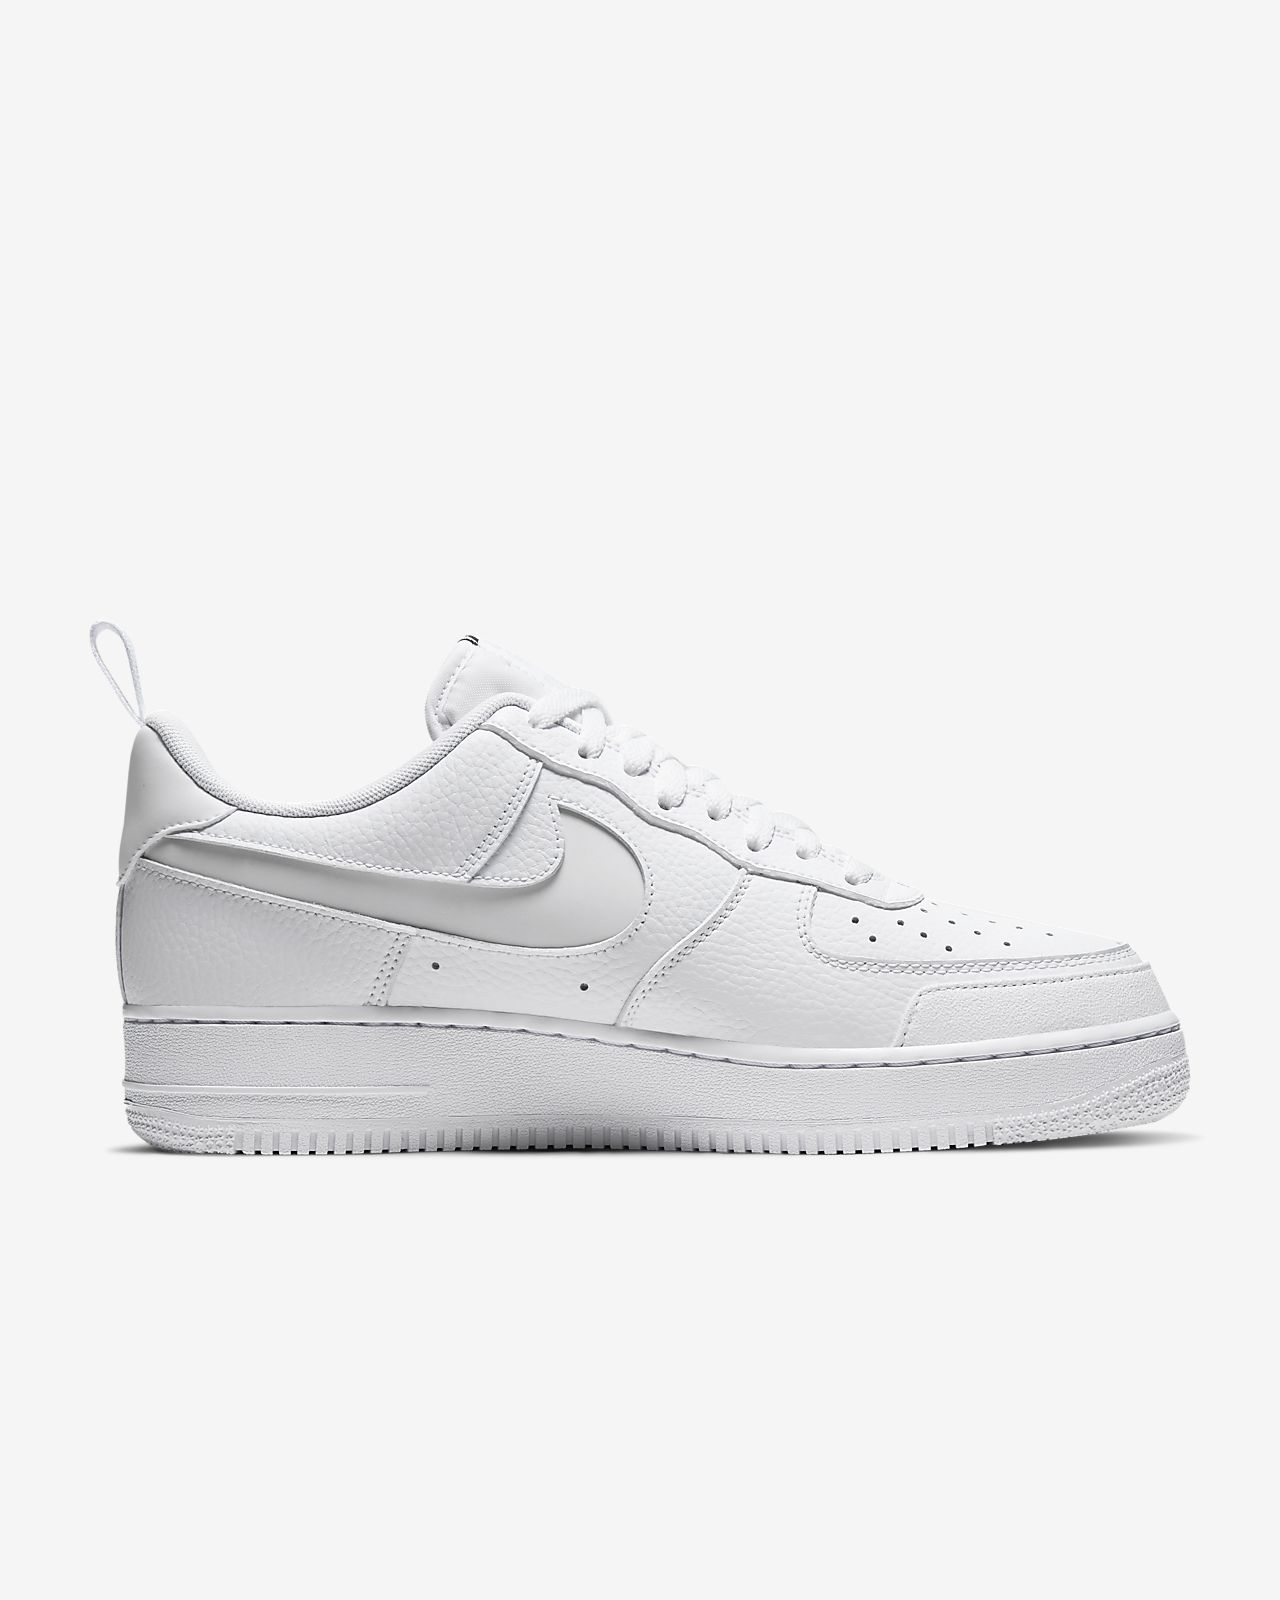 "Nike Air Force 1 07 LV8 Utility ""White"" AJ7747 100"